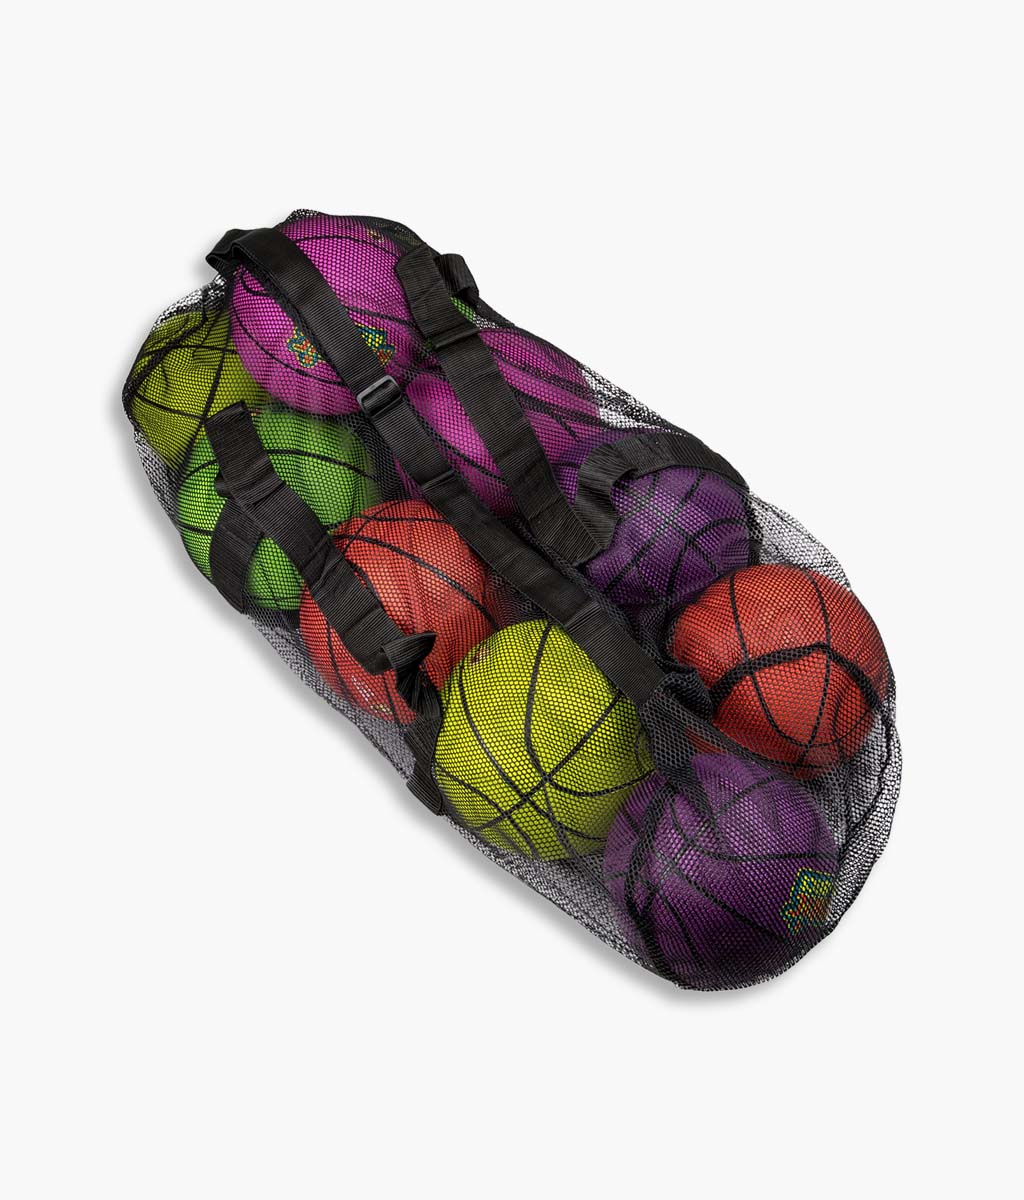 Mesh Sports Ball Bag with Adjustable Shoulder Strap Featured Image